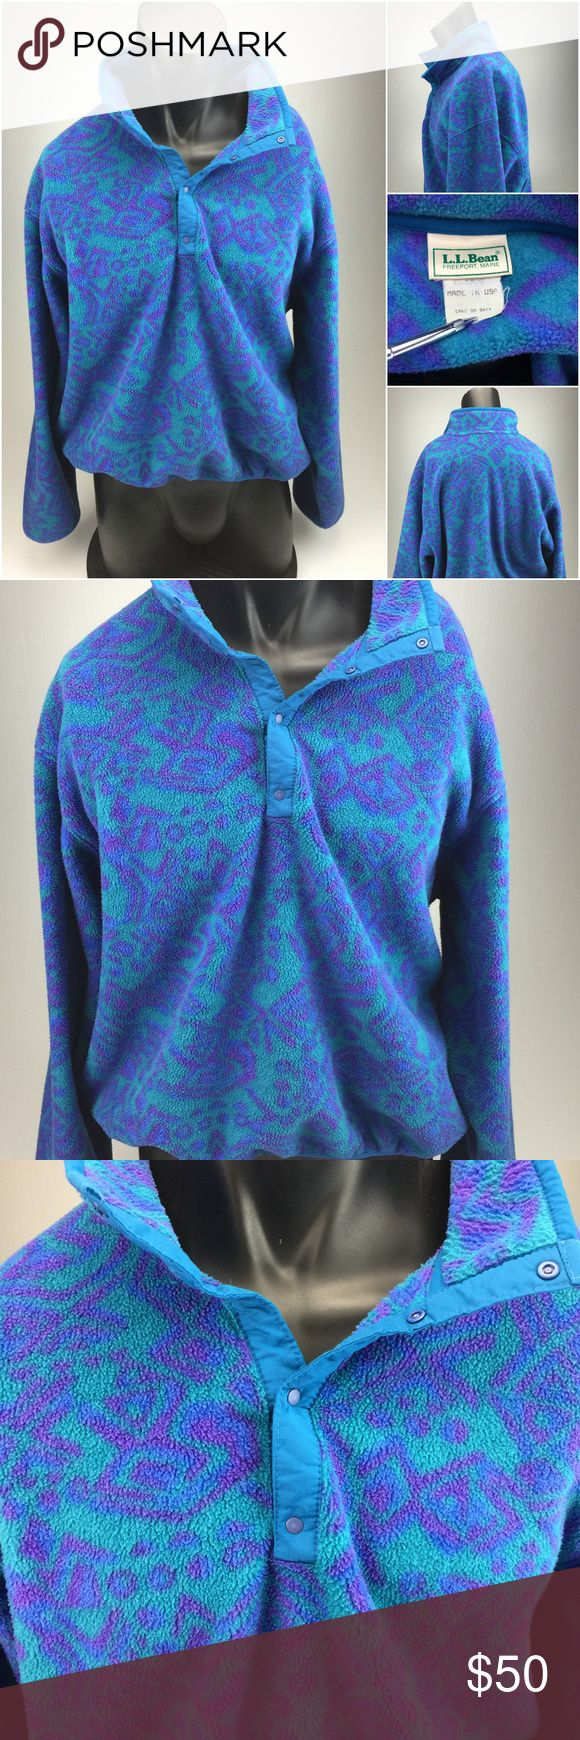 Vtg LL Bean Aztec design fleece pullover XL G4-5-5 Description: Vintage LL Bean Aztec pattern Snap T fleece pullover Brand: LL Bean Style: Pullover Sleeve: Long Size: tagged as an XL but please view measurements below Color: blues Condition: Pre-owned - nice condition  The measurements are as follows laying flat:  1. Back shoulder seam to seam - 23 inches  2. Arms - 24 inches  3. Under arm to Under arm - 27.5 inches  4. Top to bottom - 24 inches L.L. Bean Shirts Sweatshirts & Hoodies